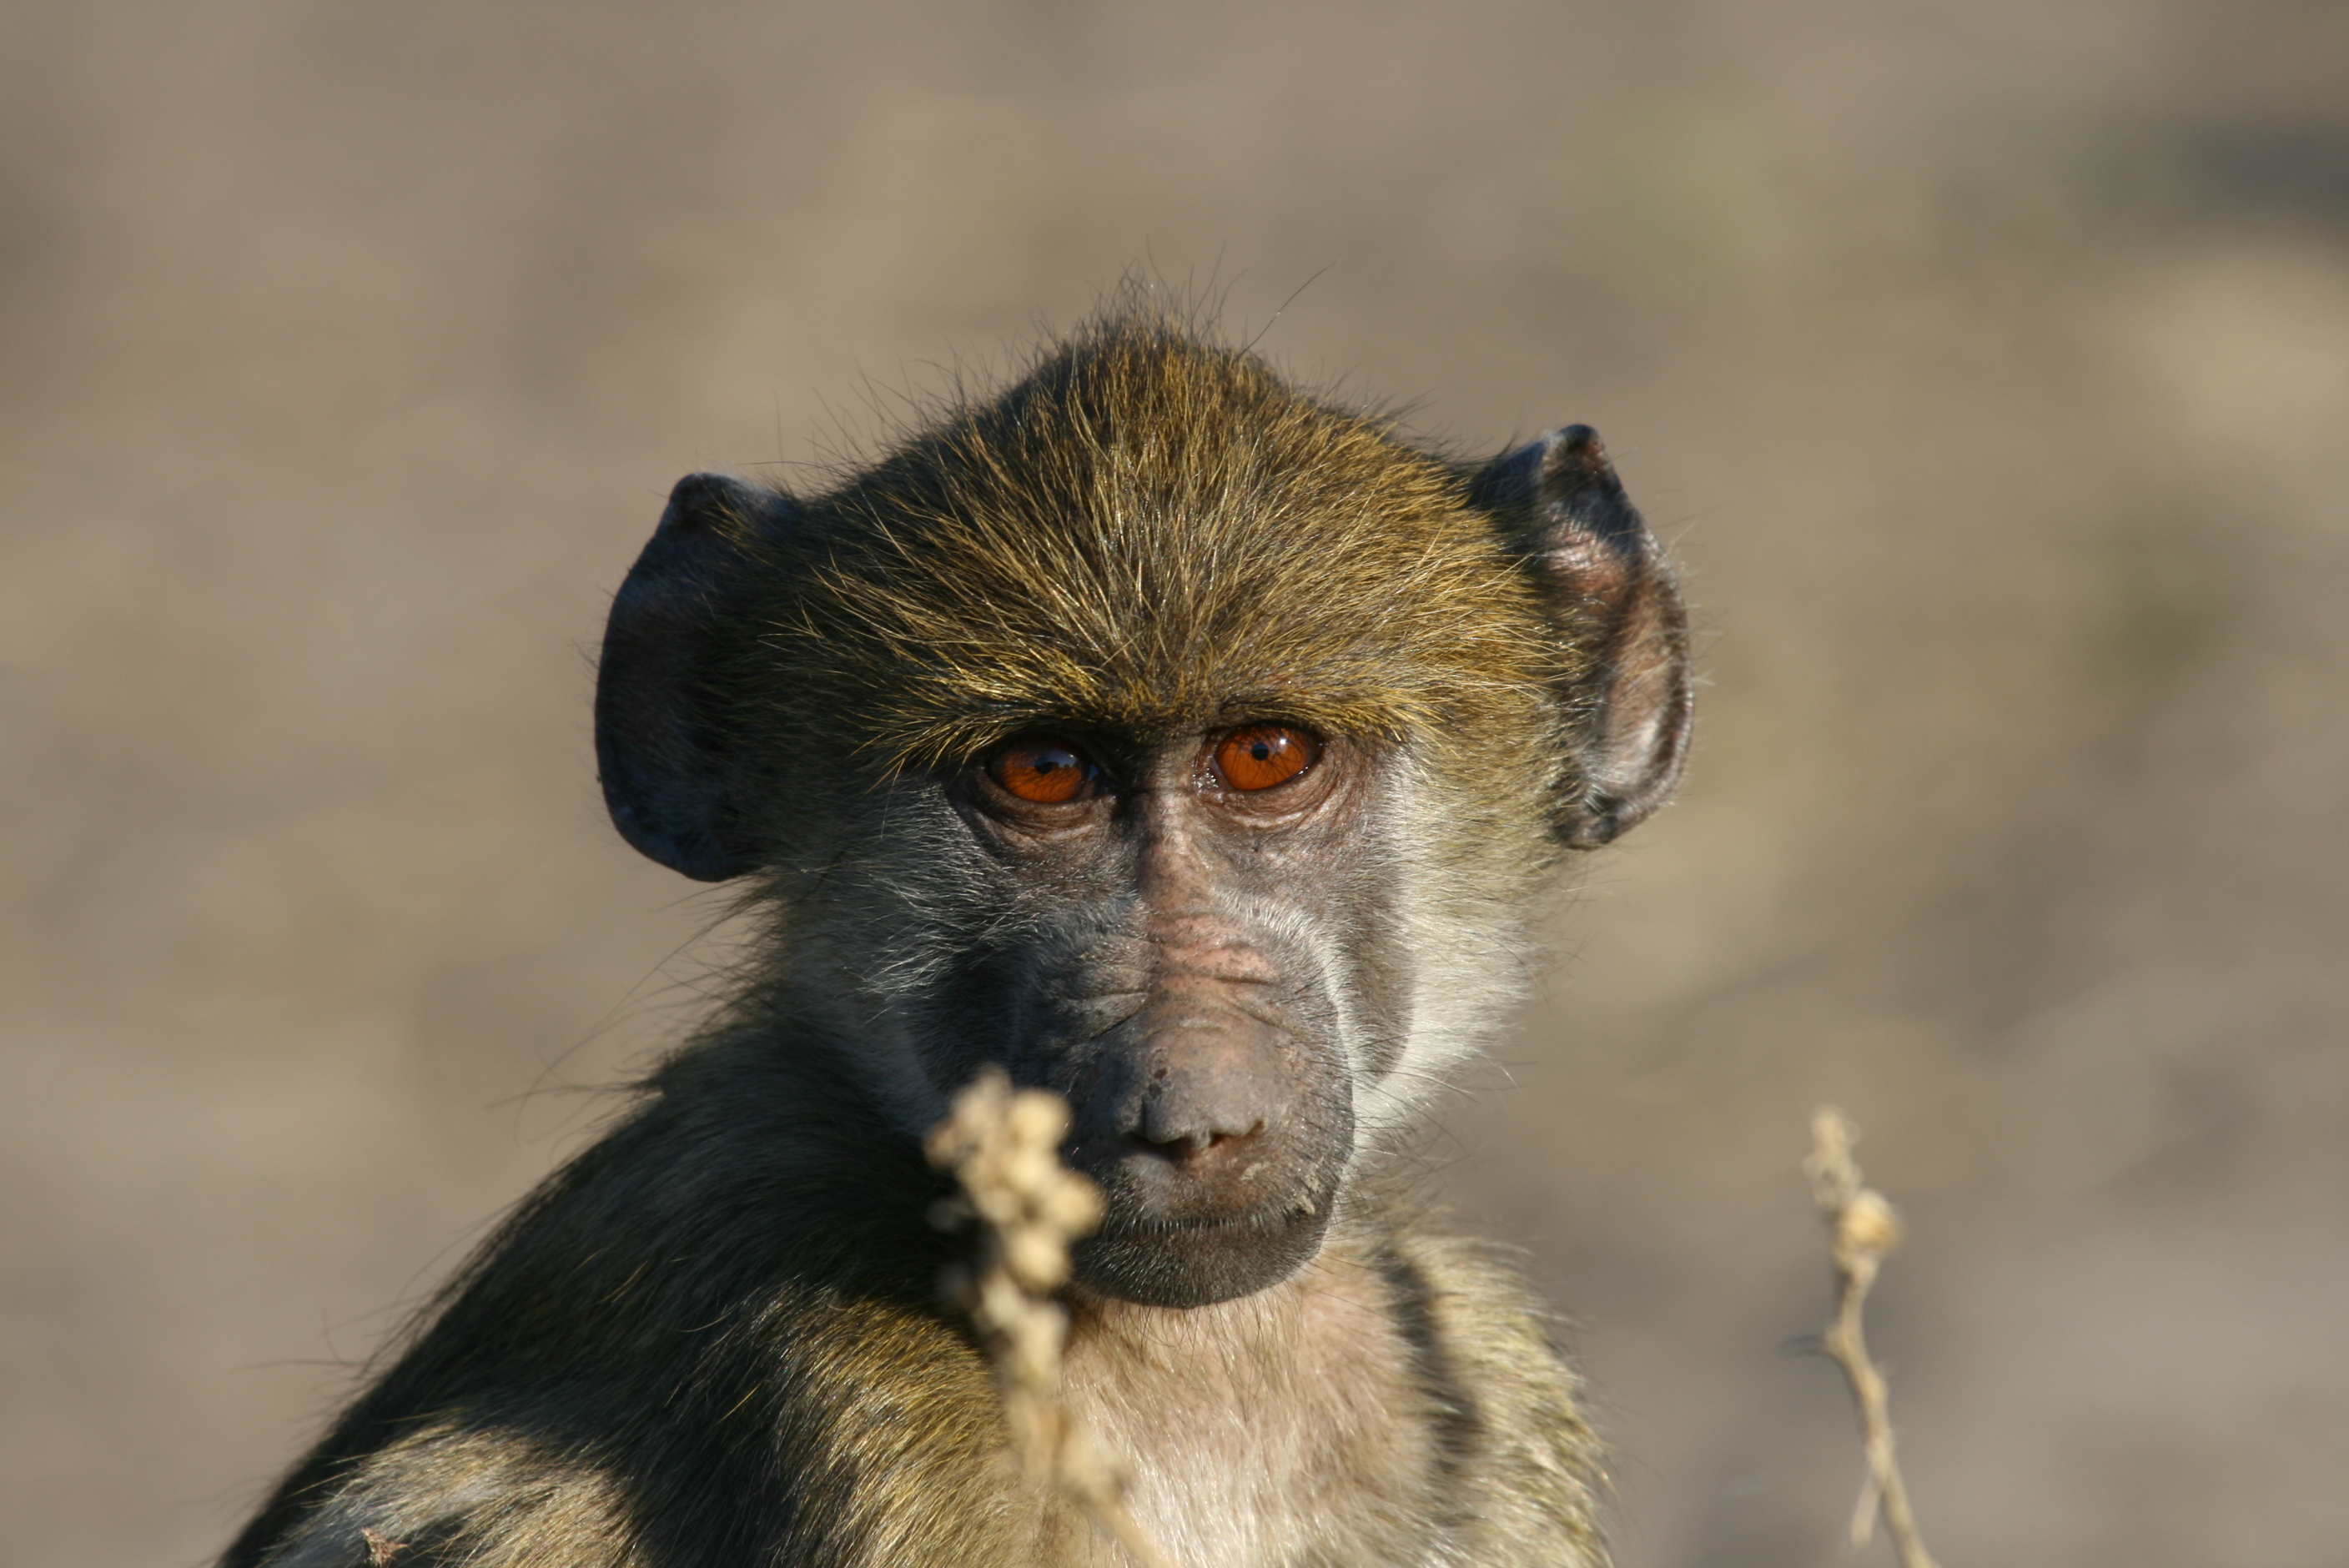 Monkey, Animal, Ape, Head, Portrait, HQ Photo